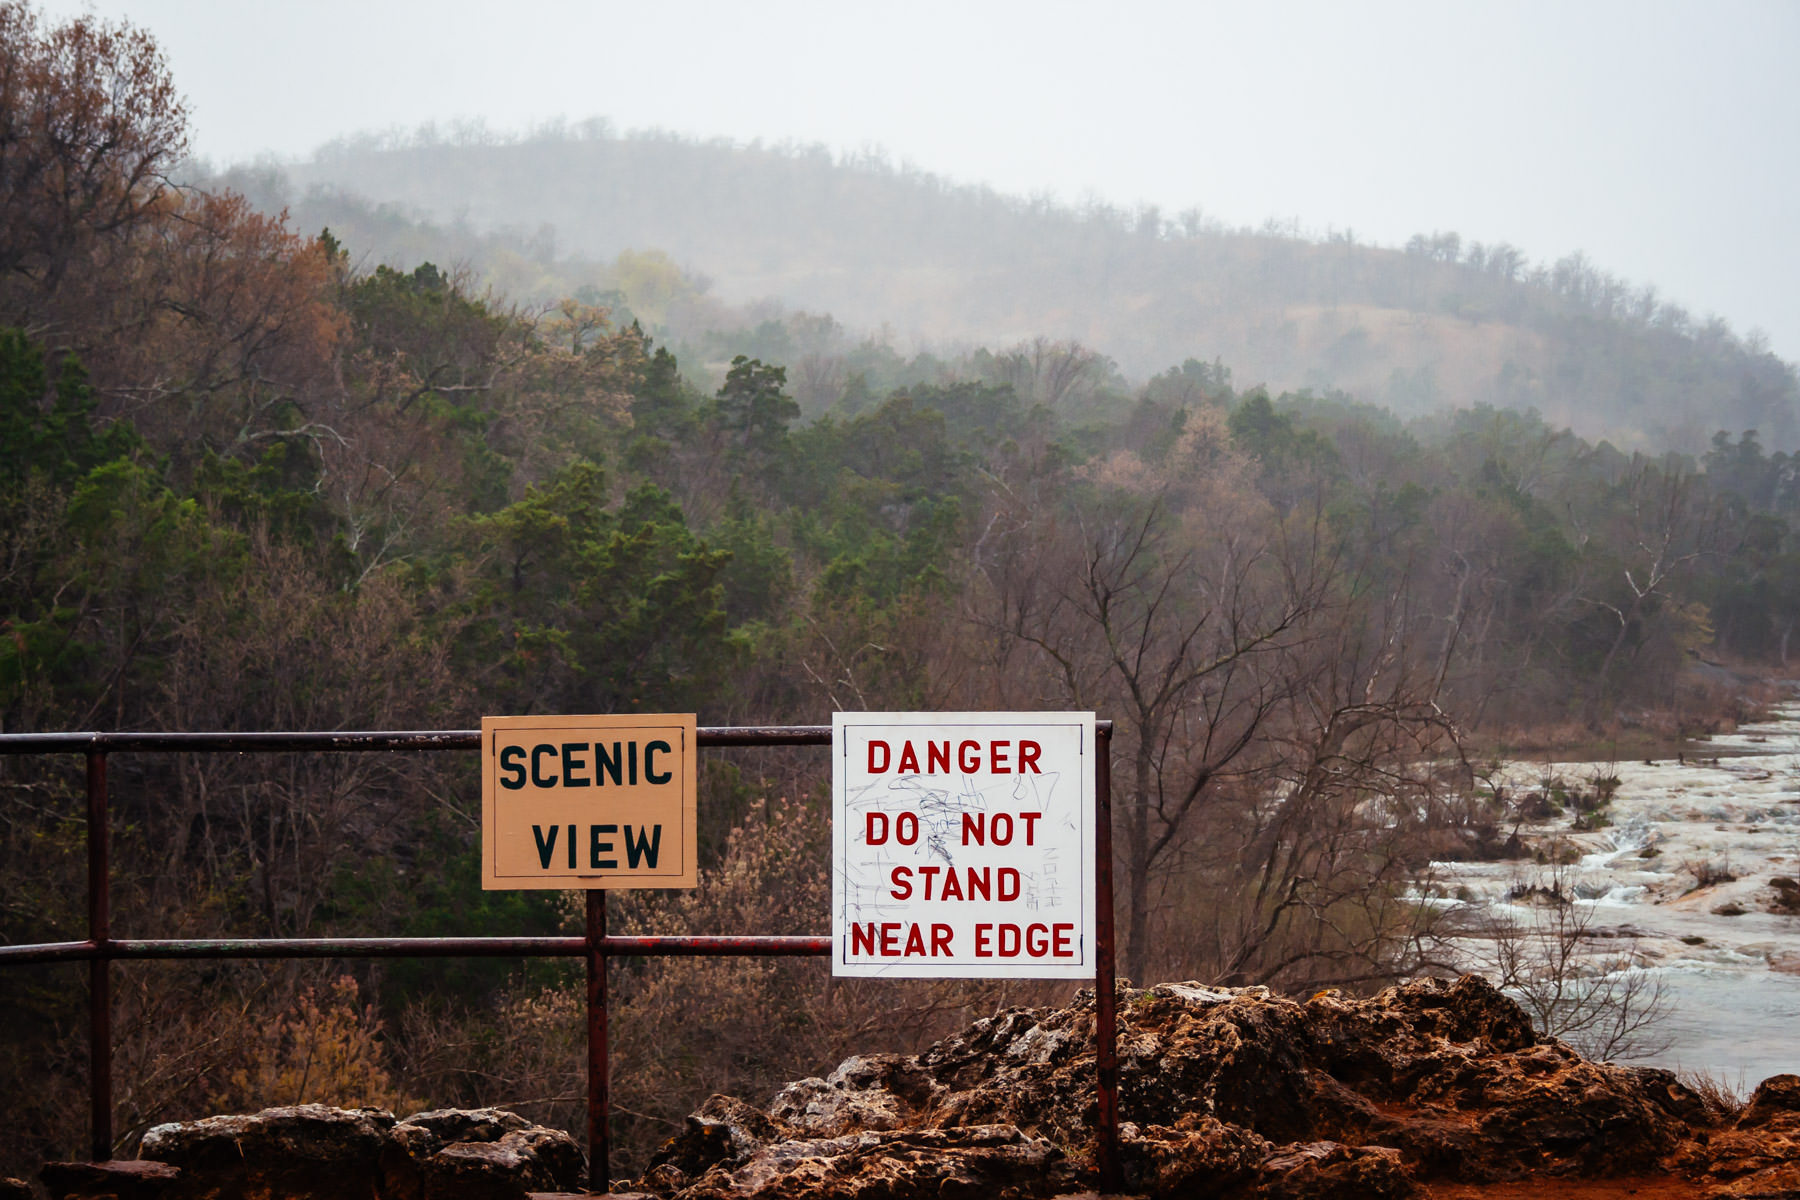 A warning sign at Turner Falls in Oklahoma on an overcast day.